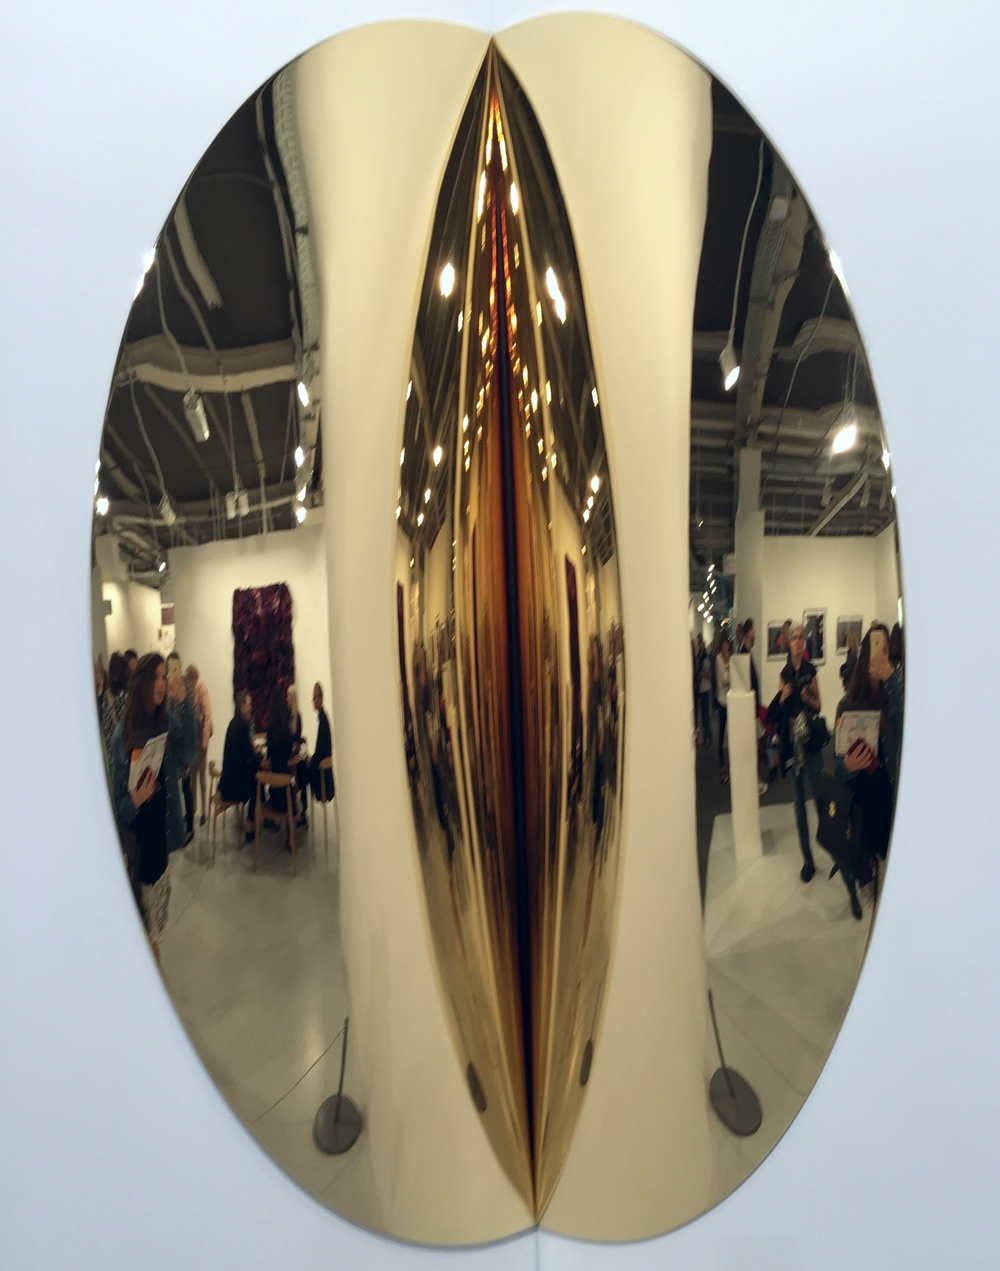 Anish Kapoor | Untitled, 2015, fibre glass and gold